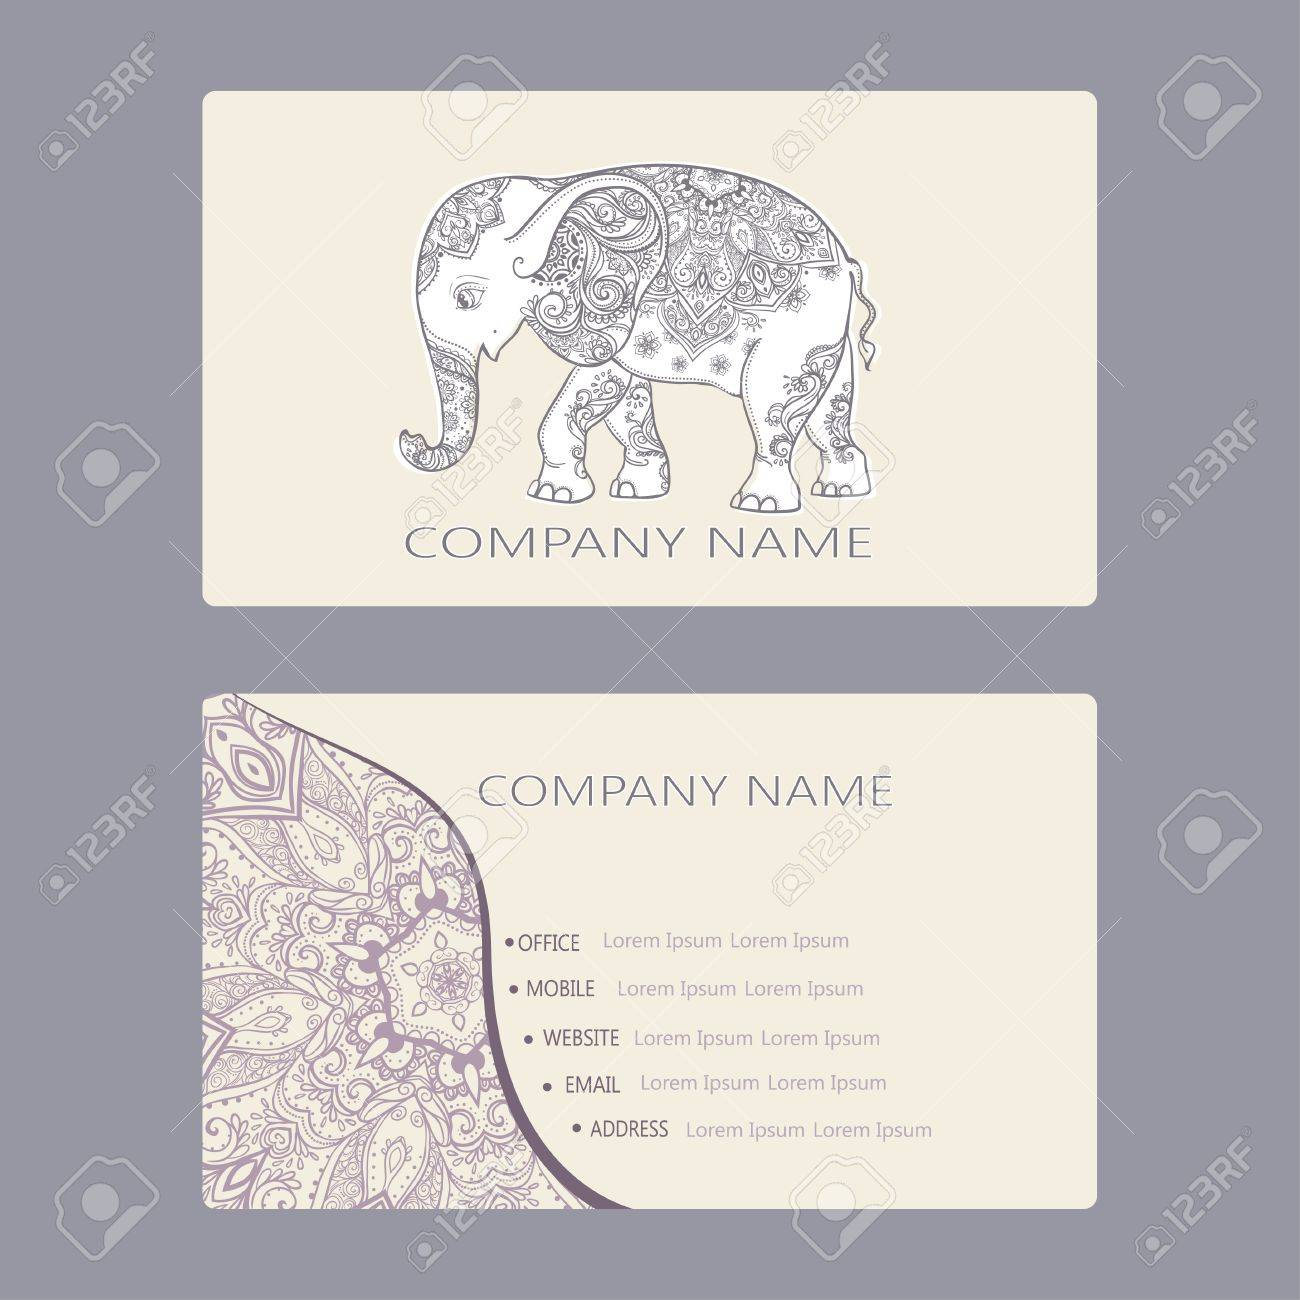 Office business card gallery free business cards 100 office business card templates free card word document office business card templates free set of magicingreecefo Image collections